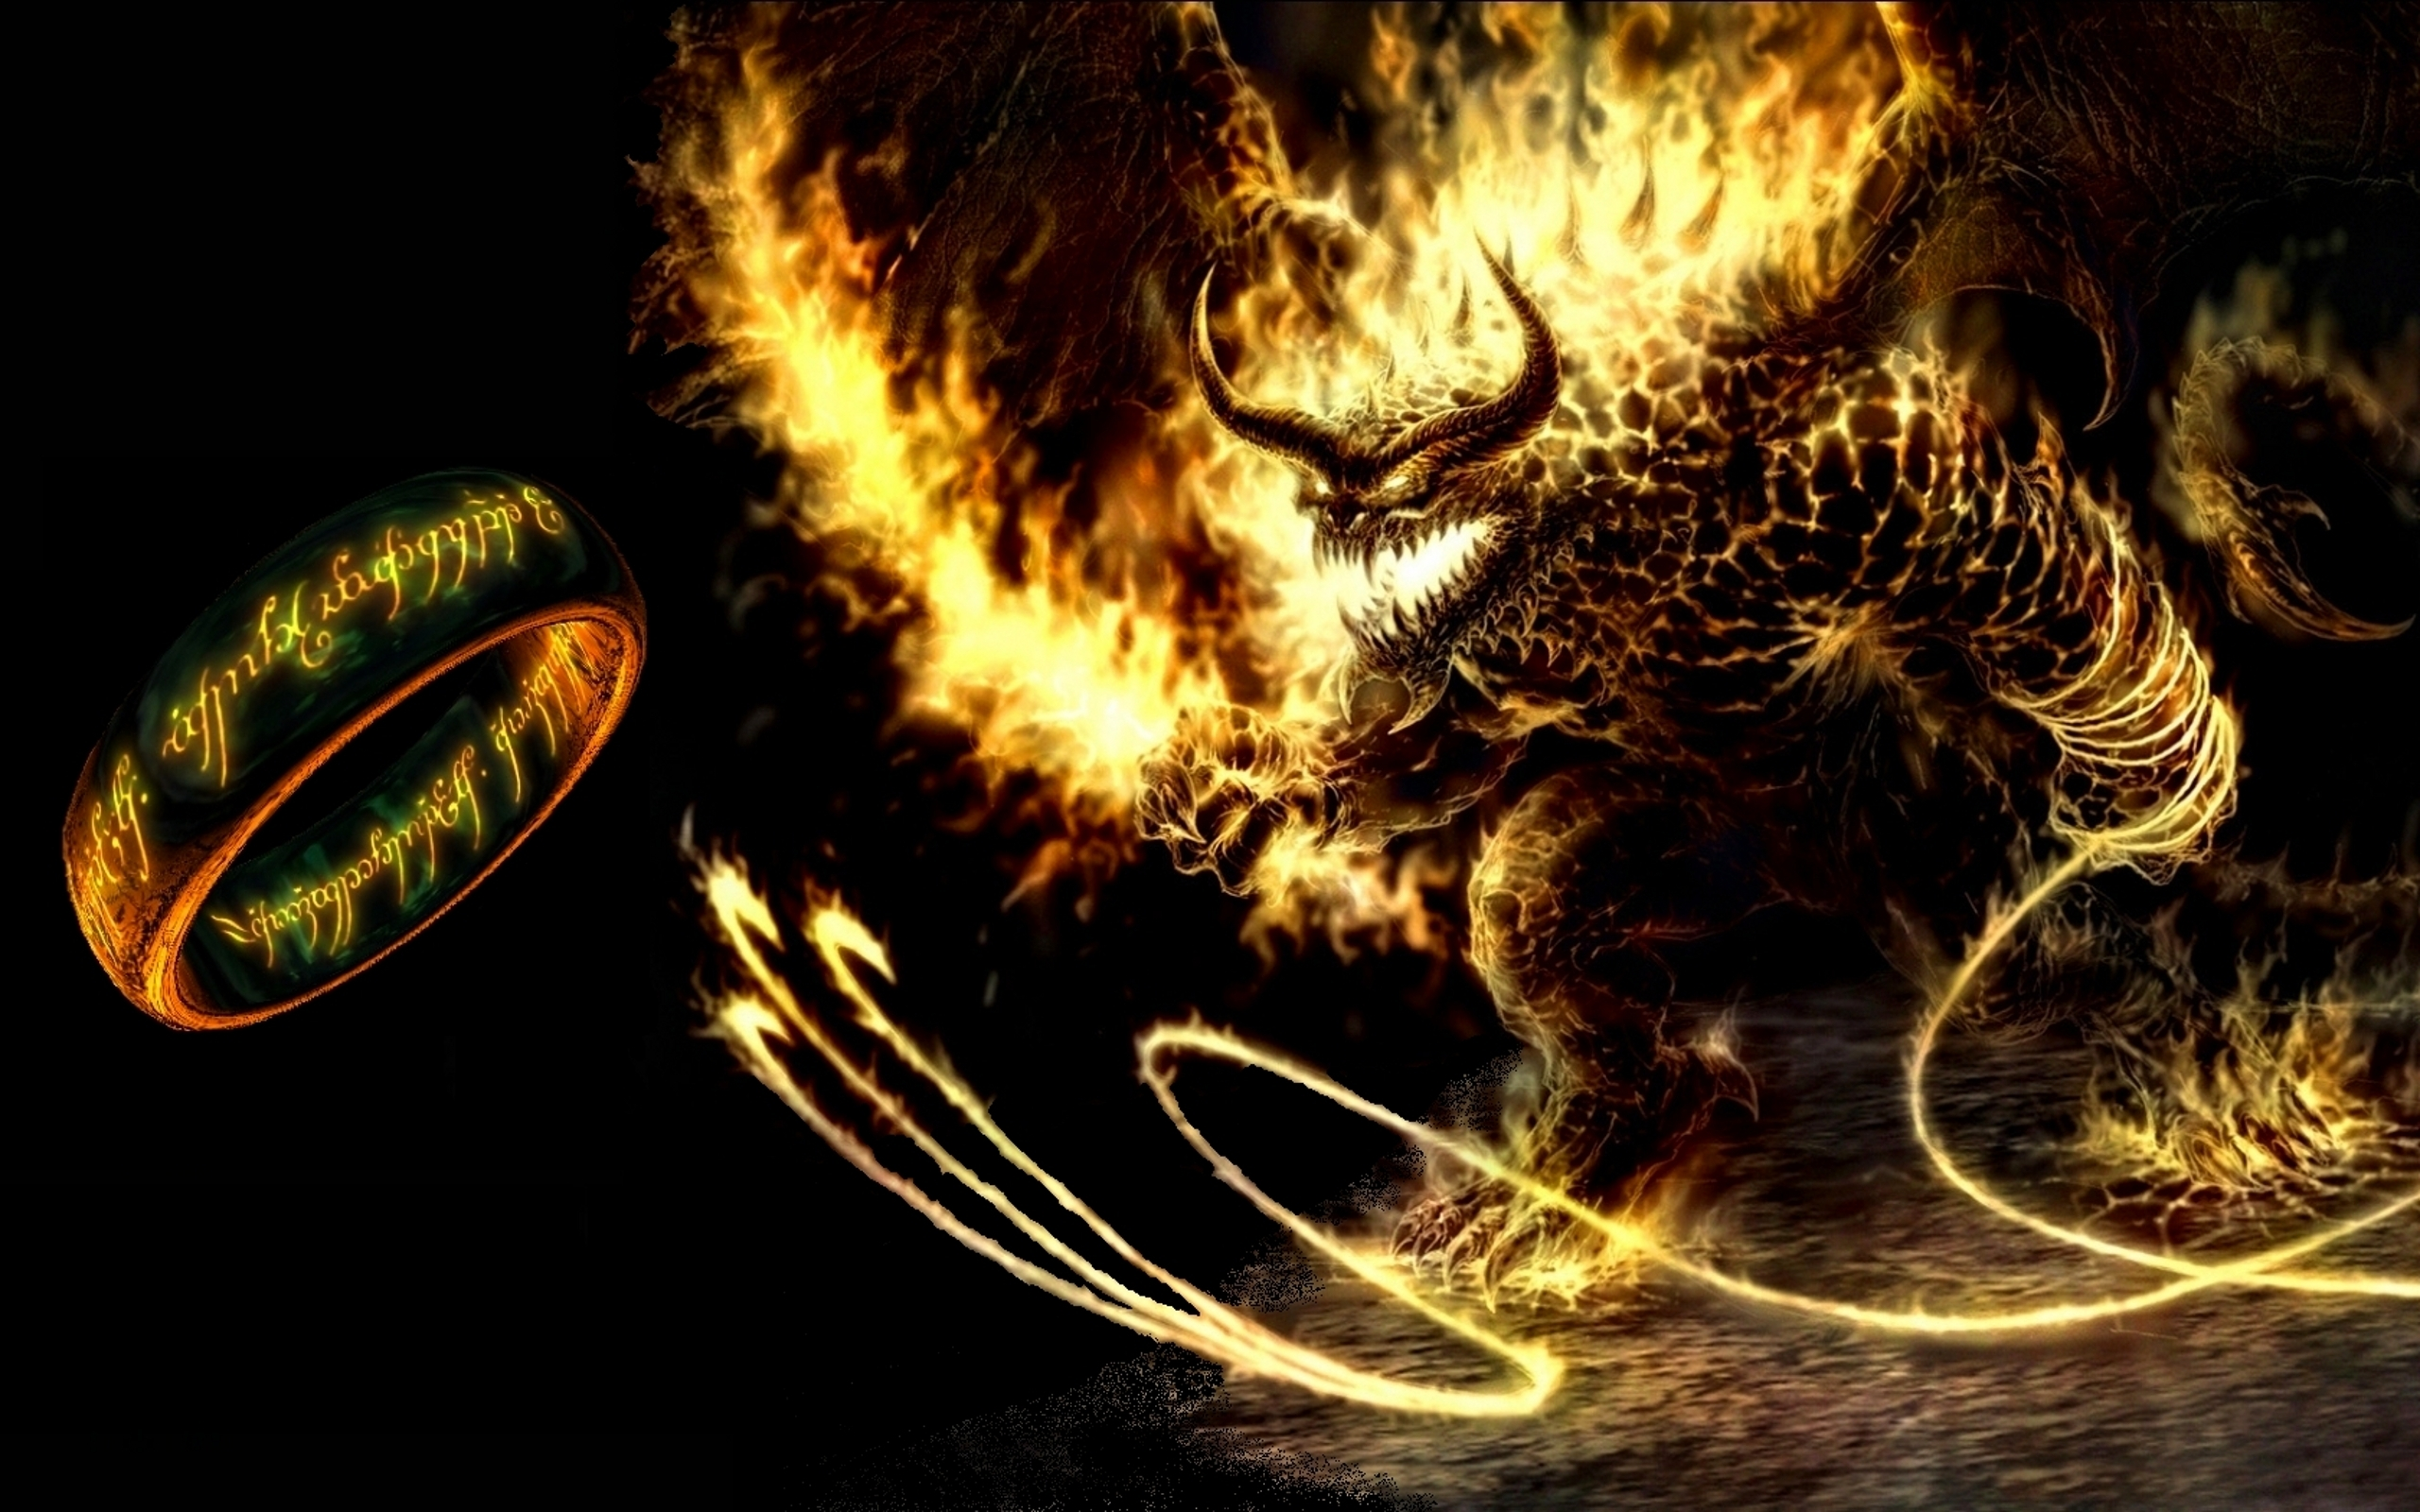 Balrog Flaming Dragon 2560x1600 Download Hd Wallpaper Wallpapertip